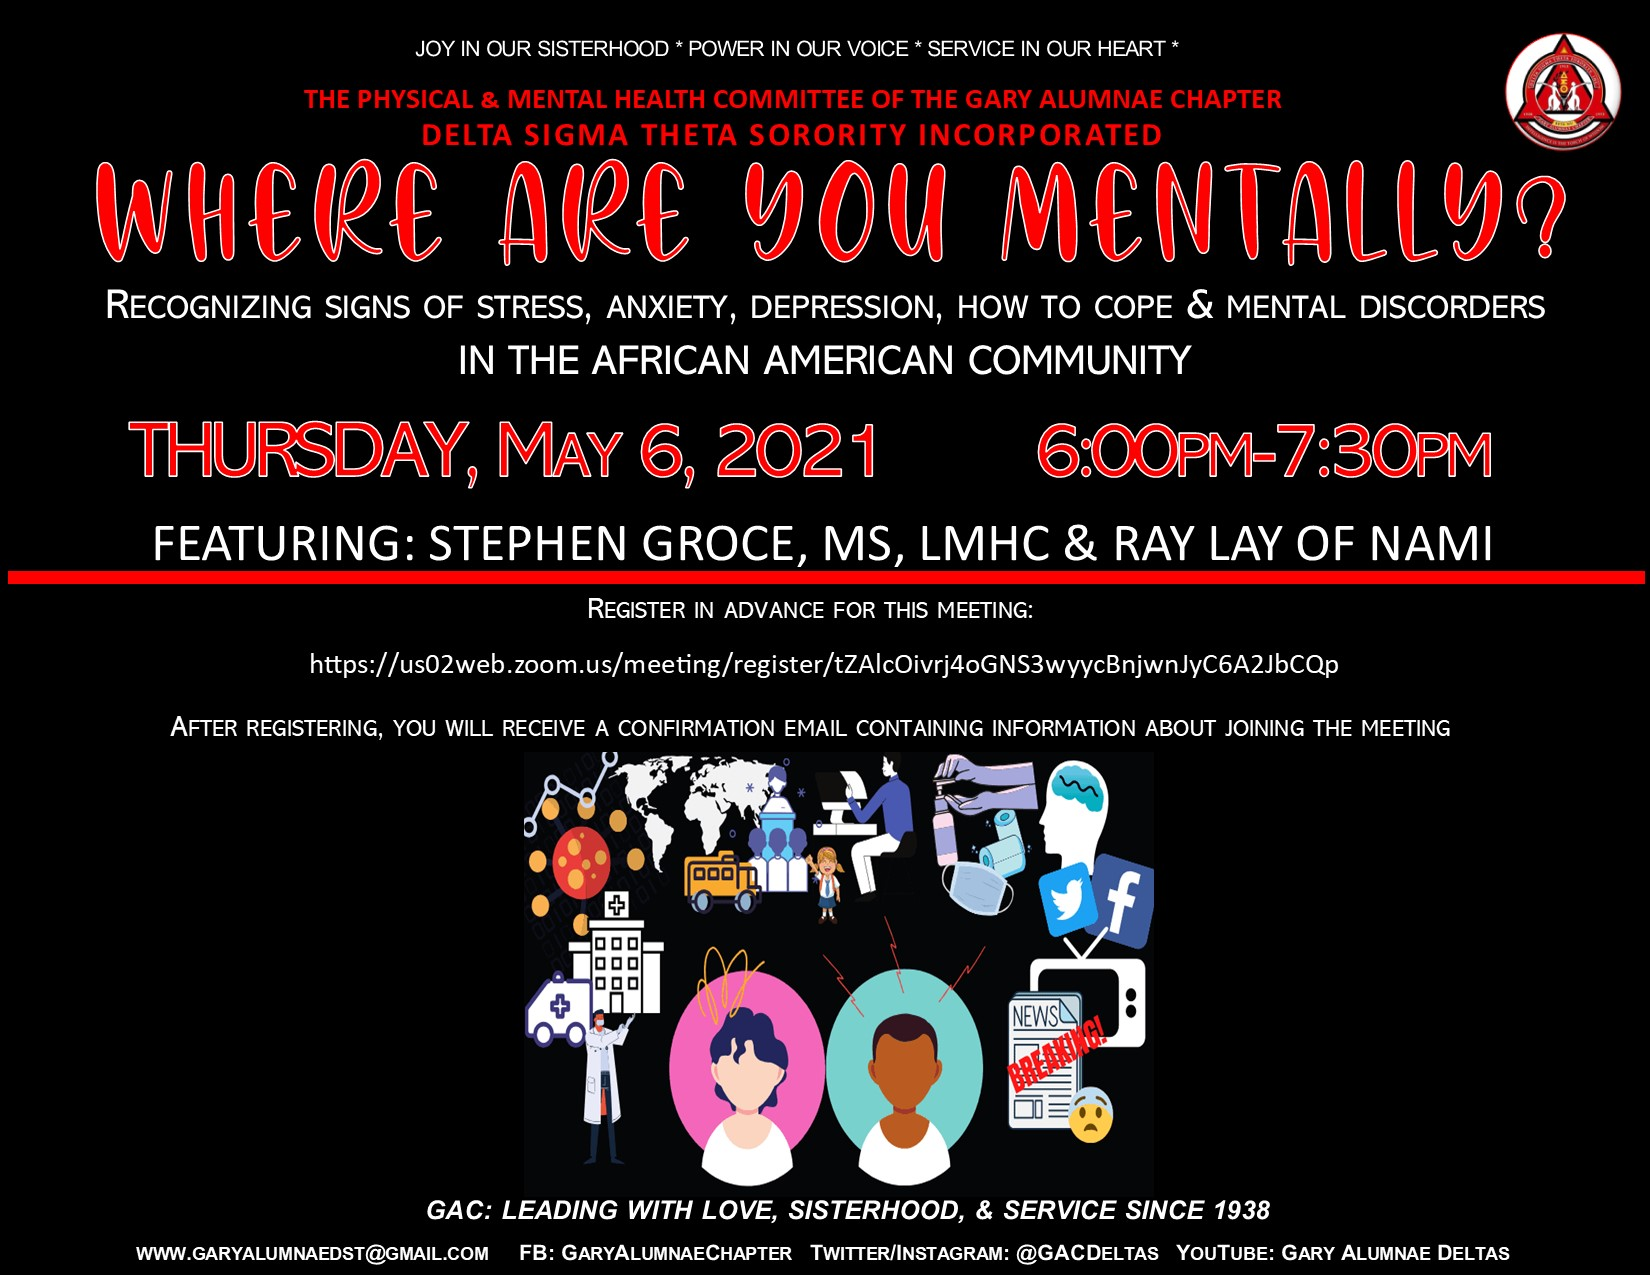 WHERE ARE YOU MENTALLY? (Click to Register)